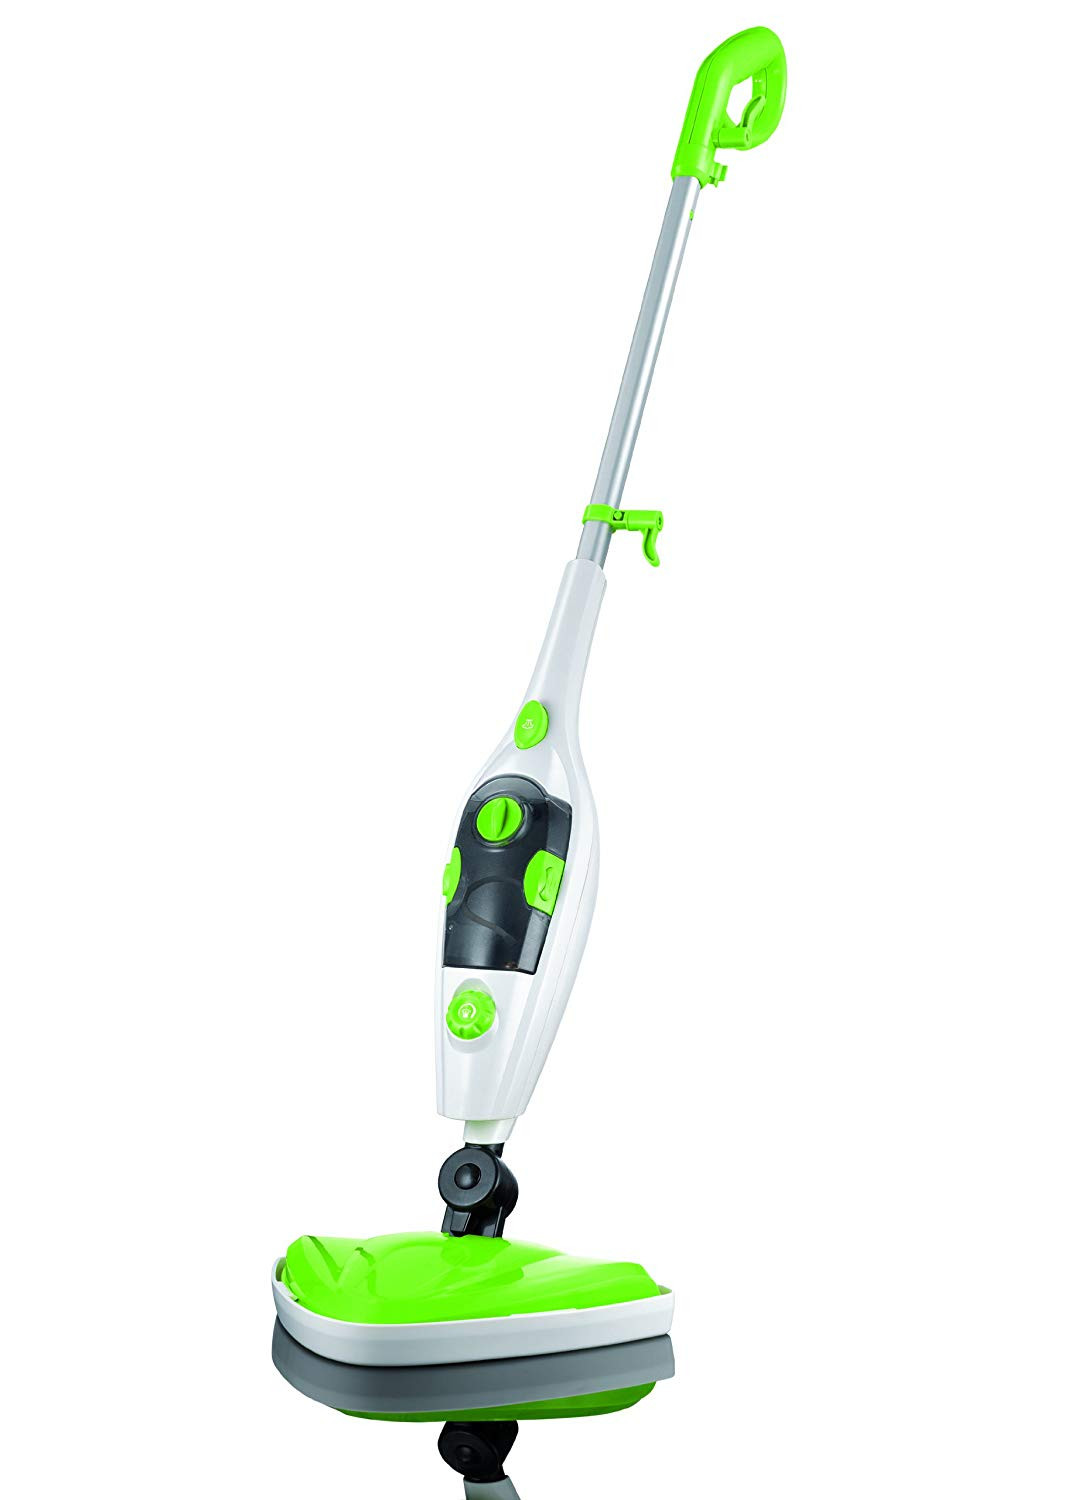 steam cleaner for hardwood floors and carpet of amazon com fuller brush 3 in 1 steam mop steamer within 71afl9vcfpl sl1500